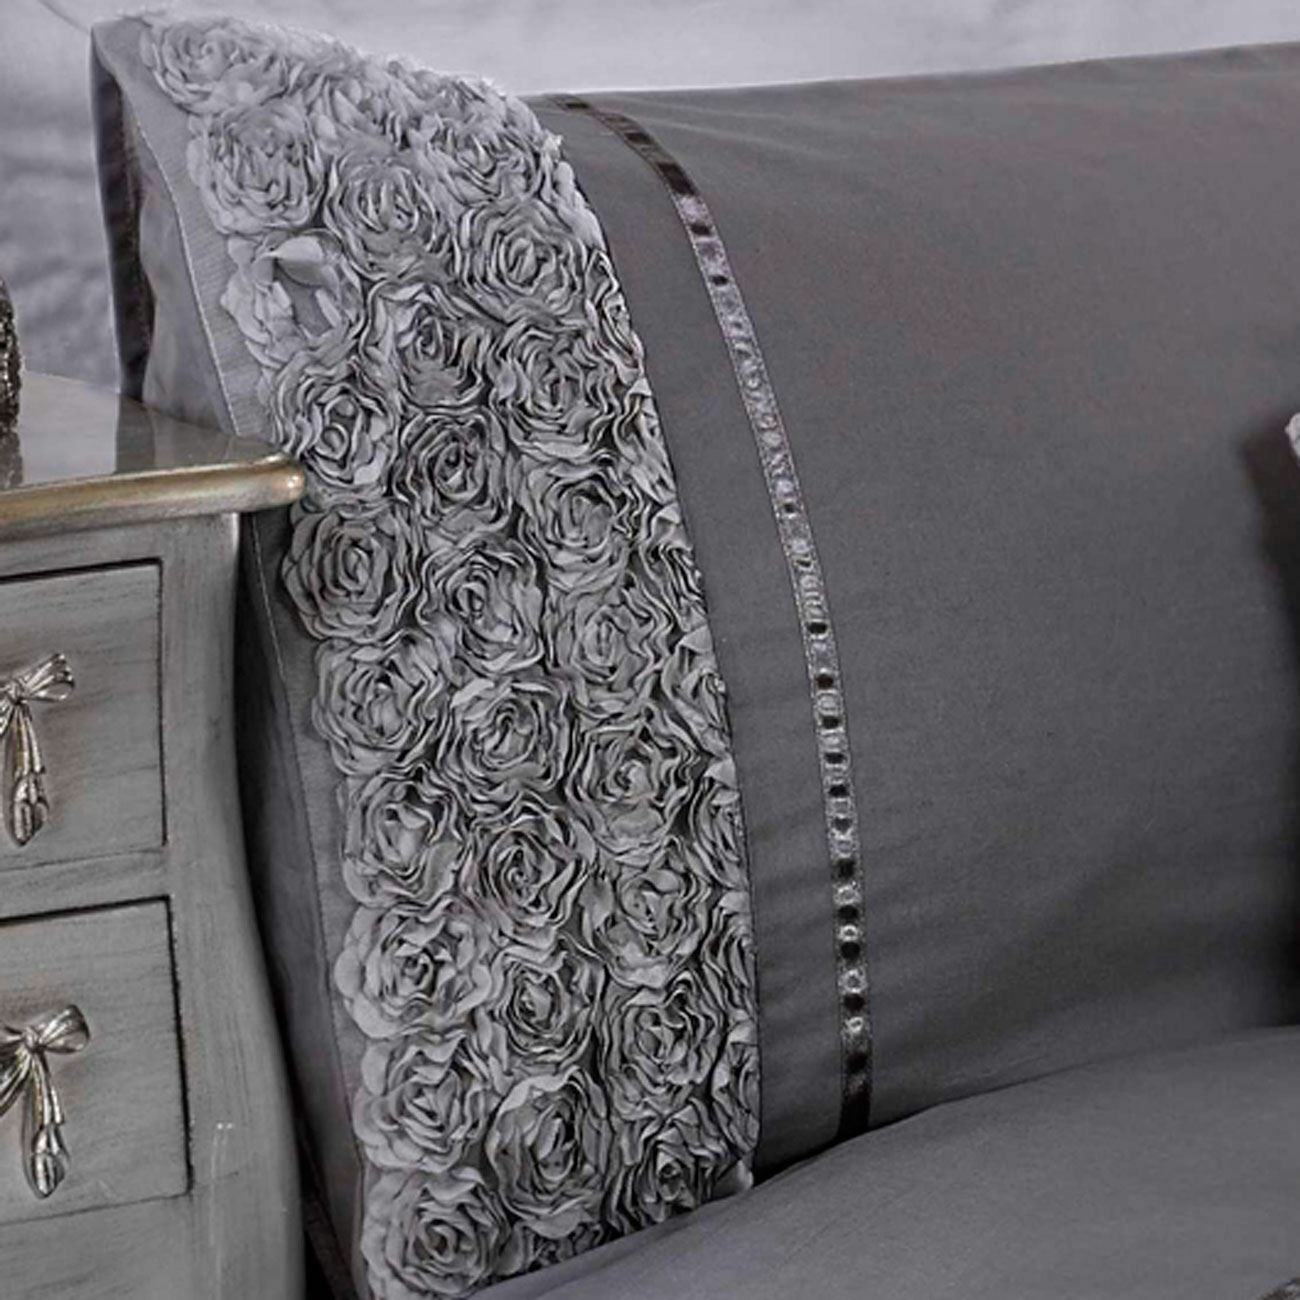 LIMOGES pink RUFFLE KING SIZE DUVET COVER SET LUXURY BEDDING GREY